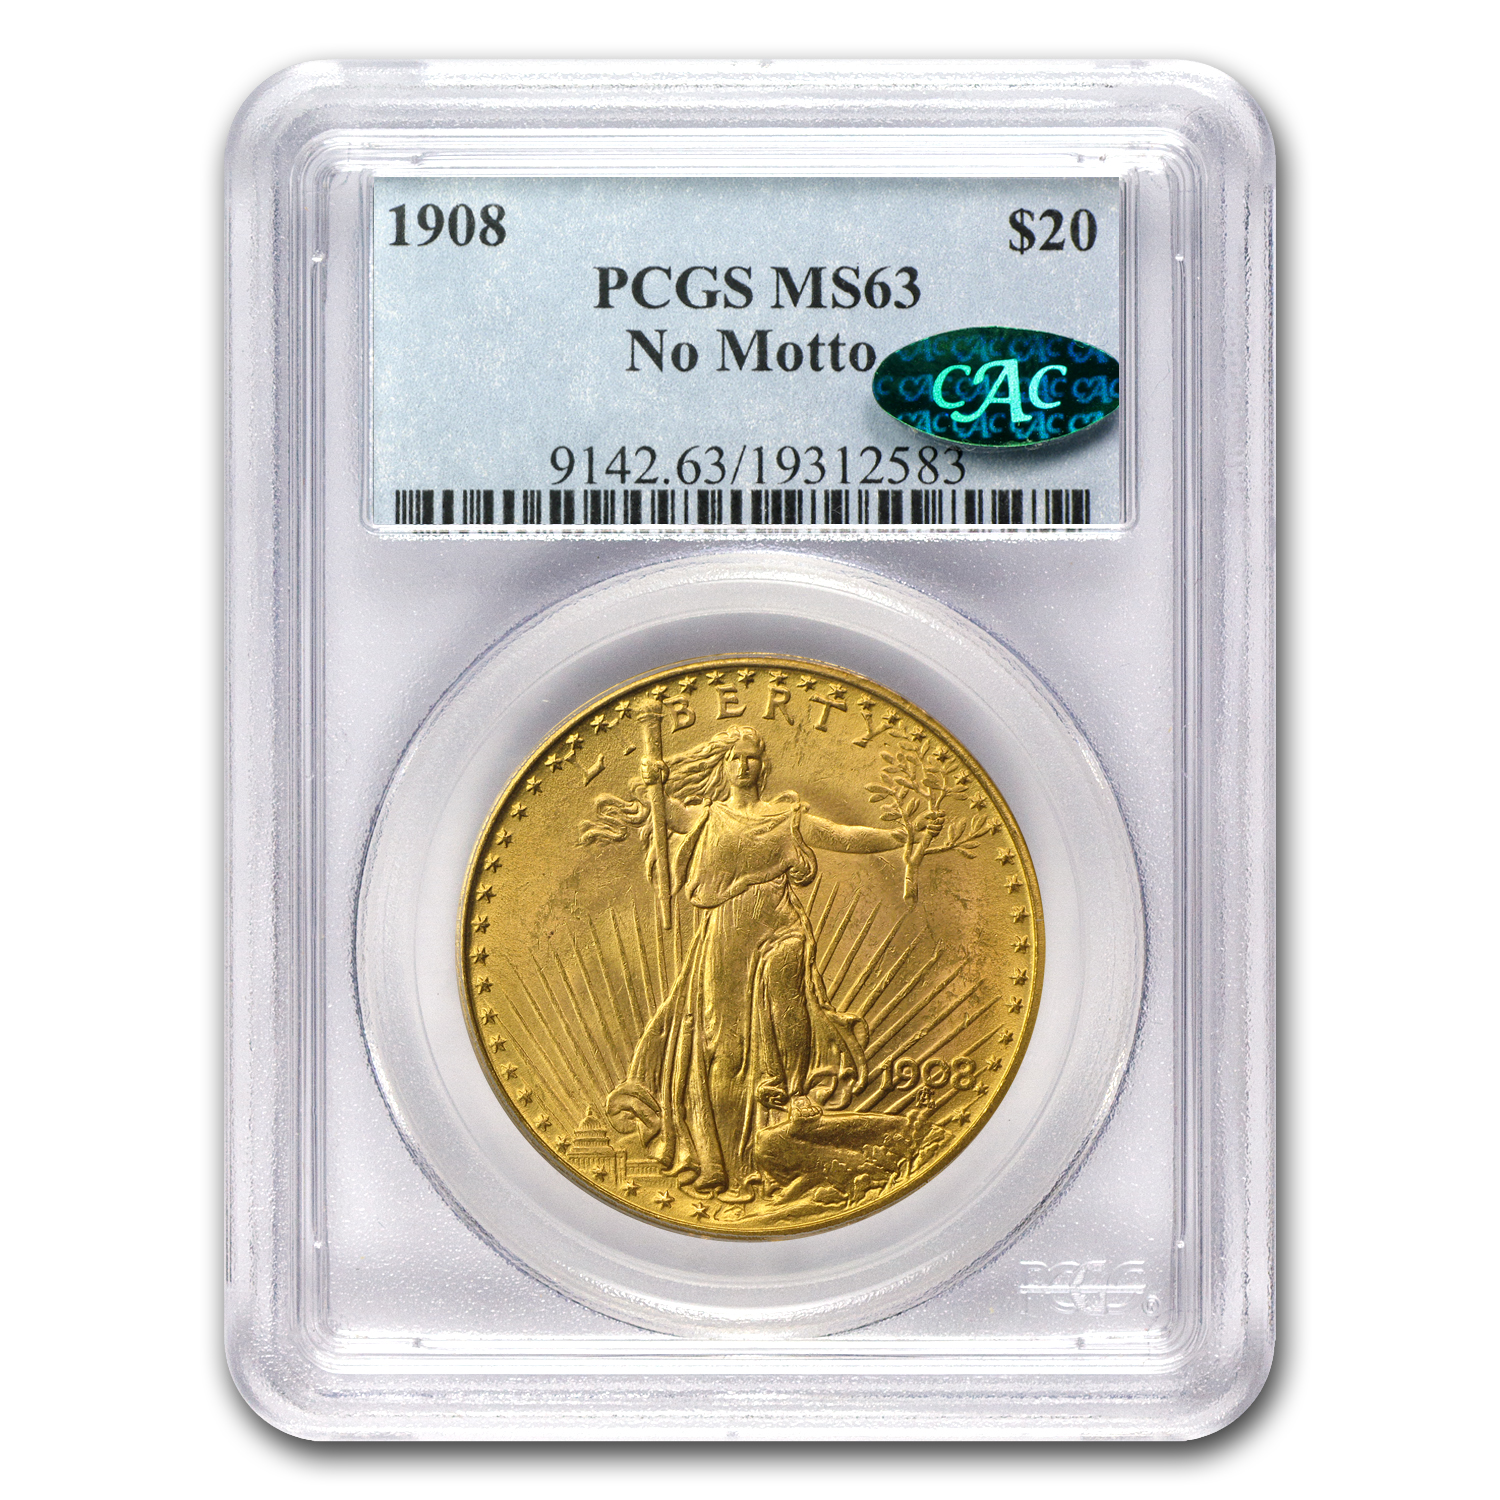 1908 $20 St. Gaudens Gold - No Motto - MS-63 PCGS CAC